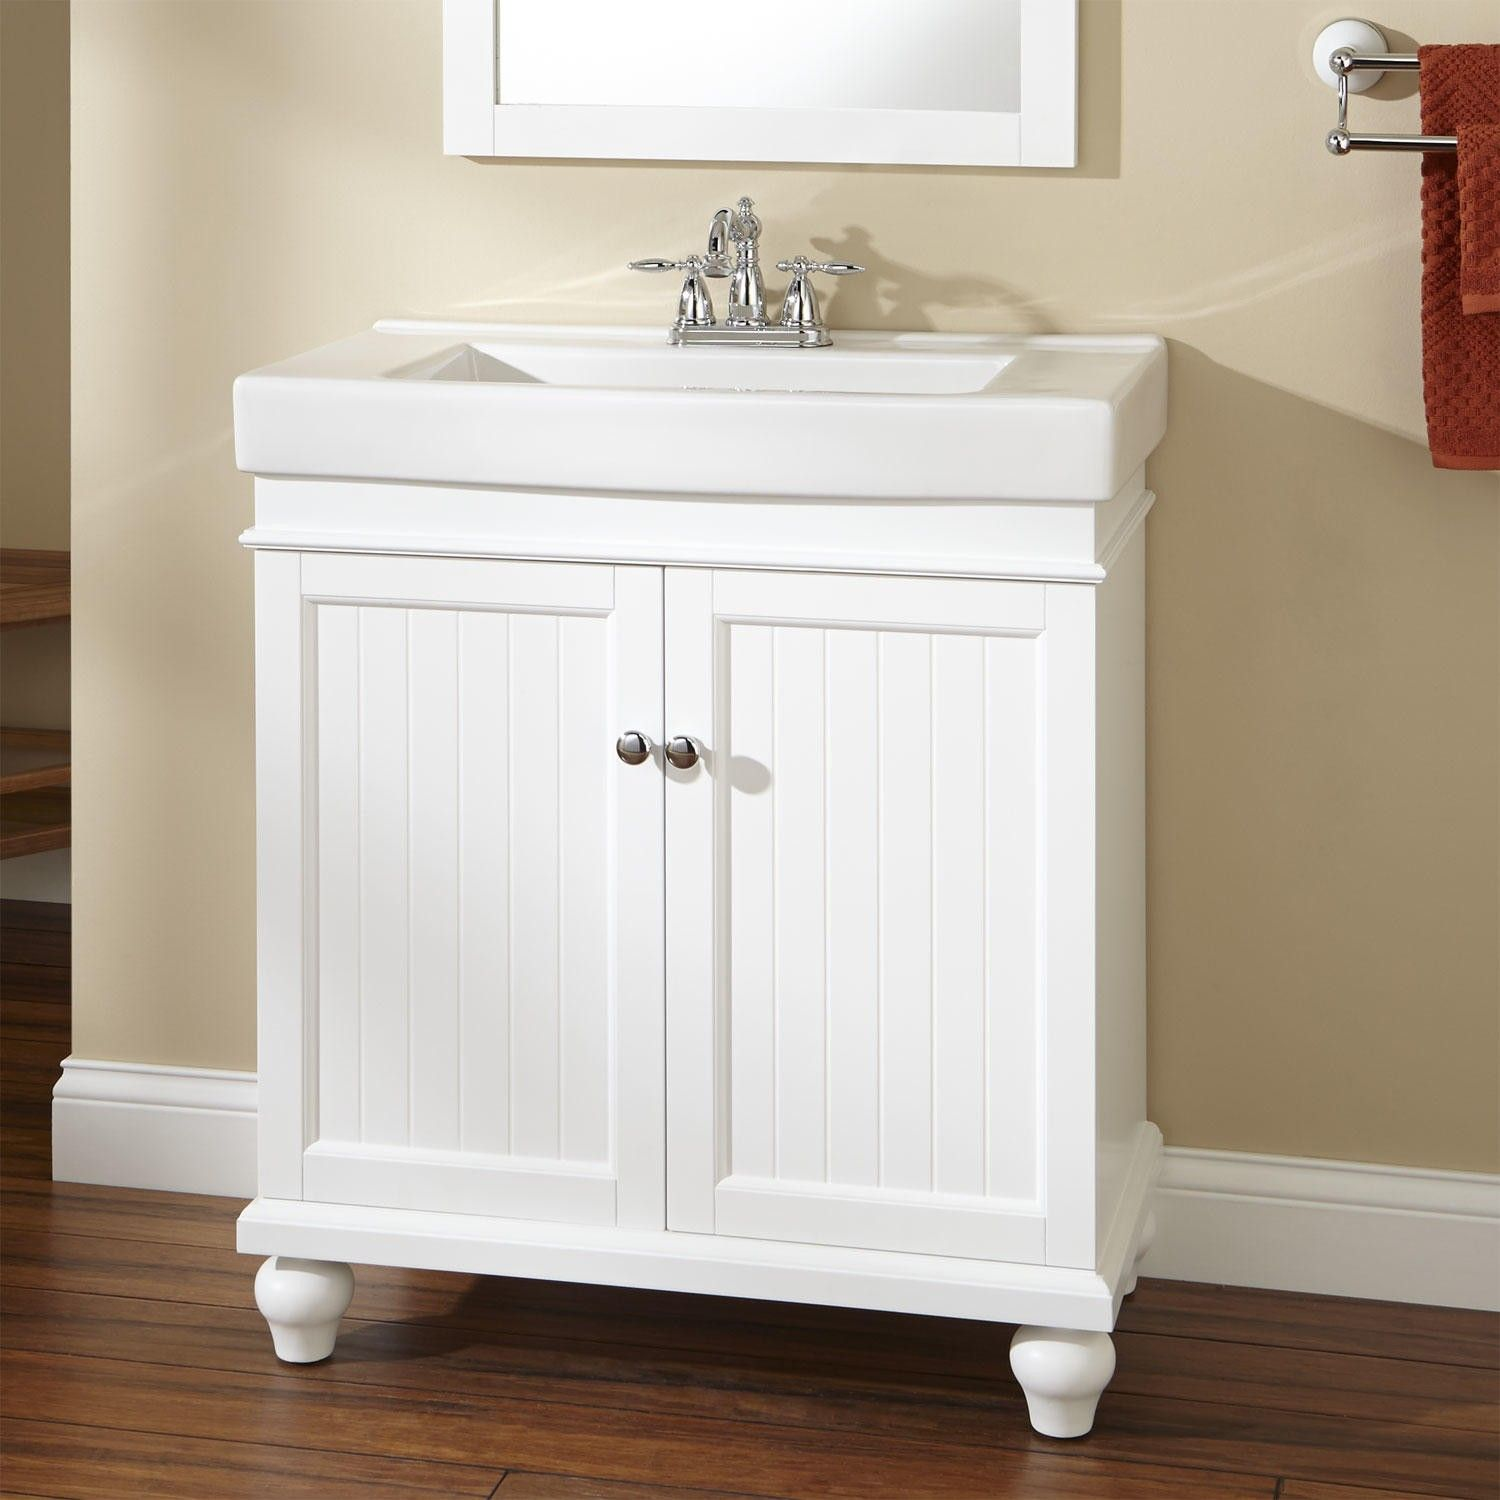 "Narrow 24 Bathroom Vanity 30"" lander vanity - white 